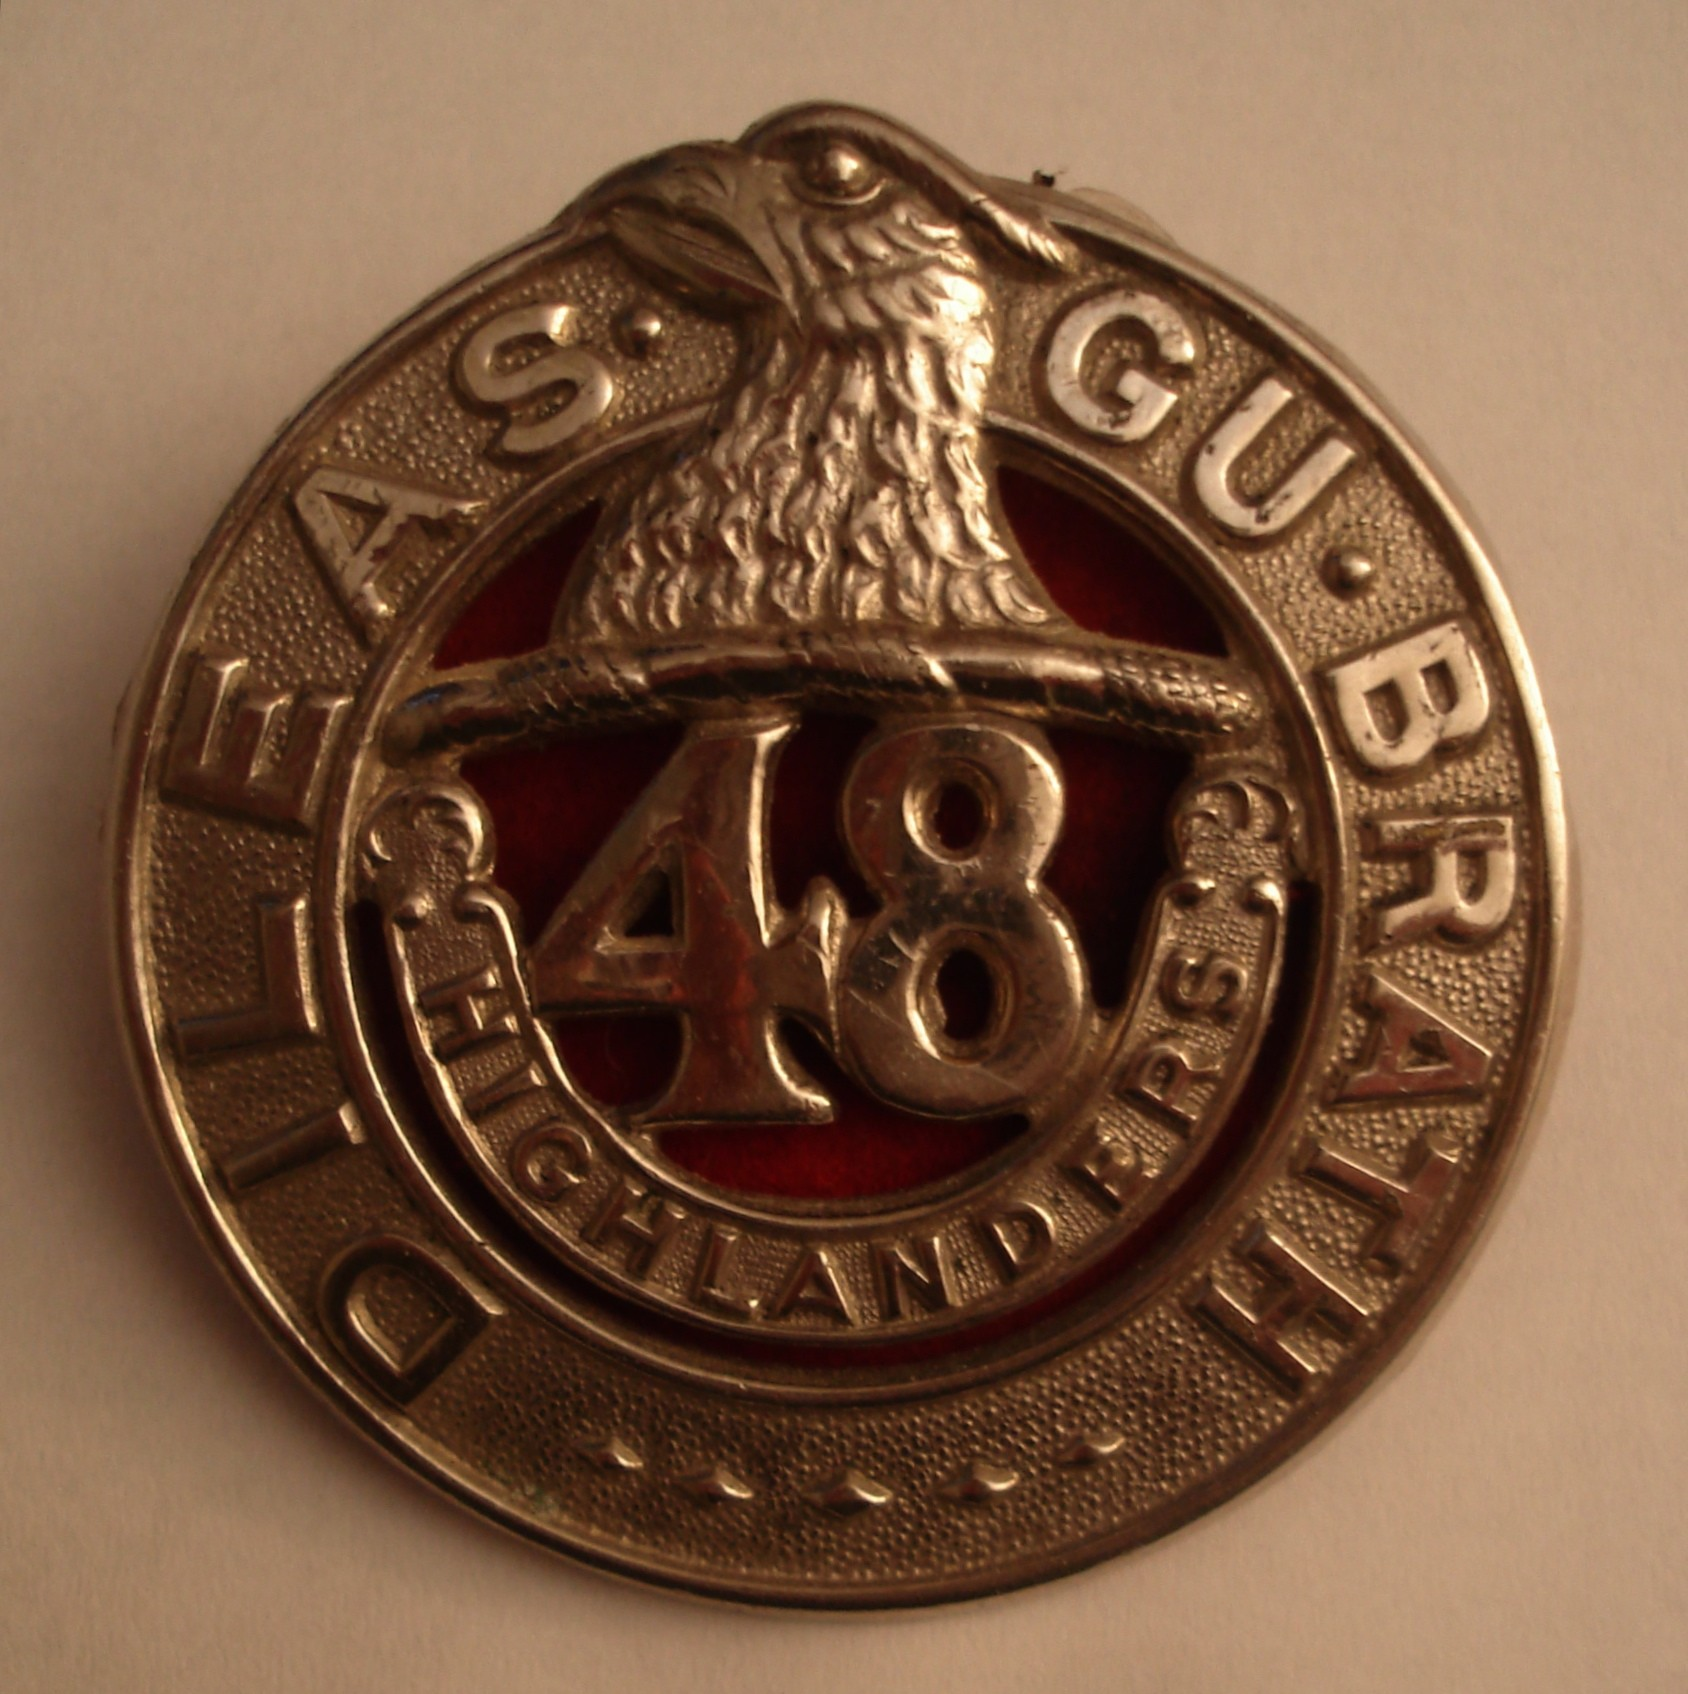 Badge– In memory of the members of the 48th Highlanders of Canada who went to war and did not come home. Submitted on behalf of the 48th Highlanders Museum, 73 Simcoe St. Toronto, ON M5J 1W9 Submitted for the project Operation: Picture Me.